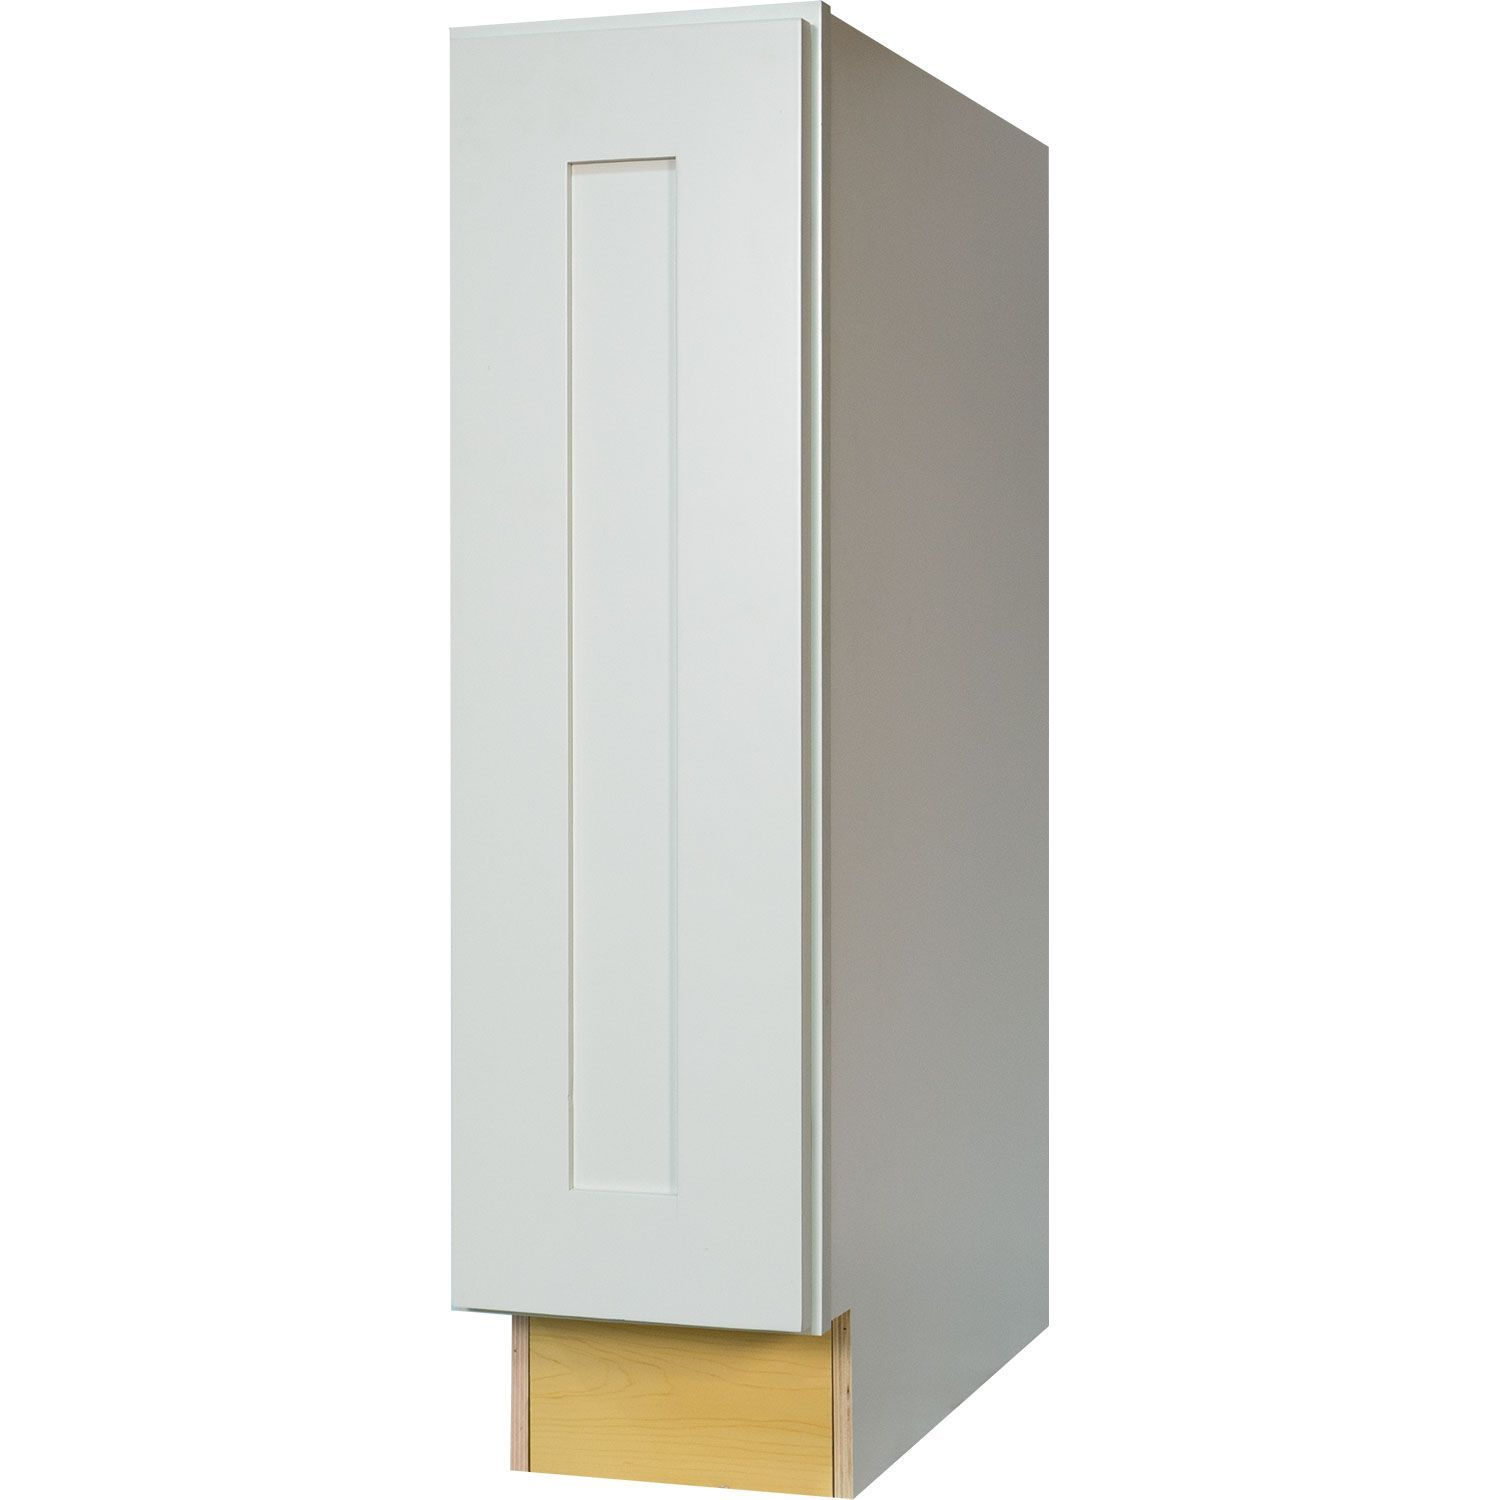 9 Inch Full Height Door Base Cabinet In Shaker White With 1 Soft